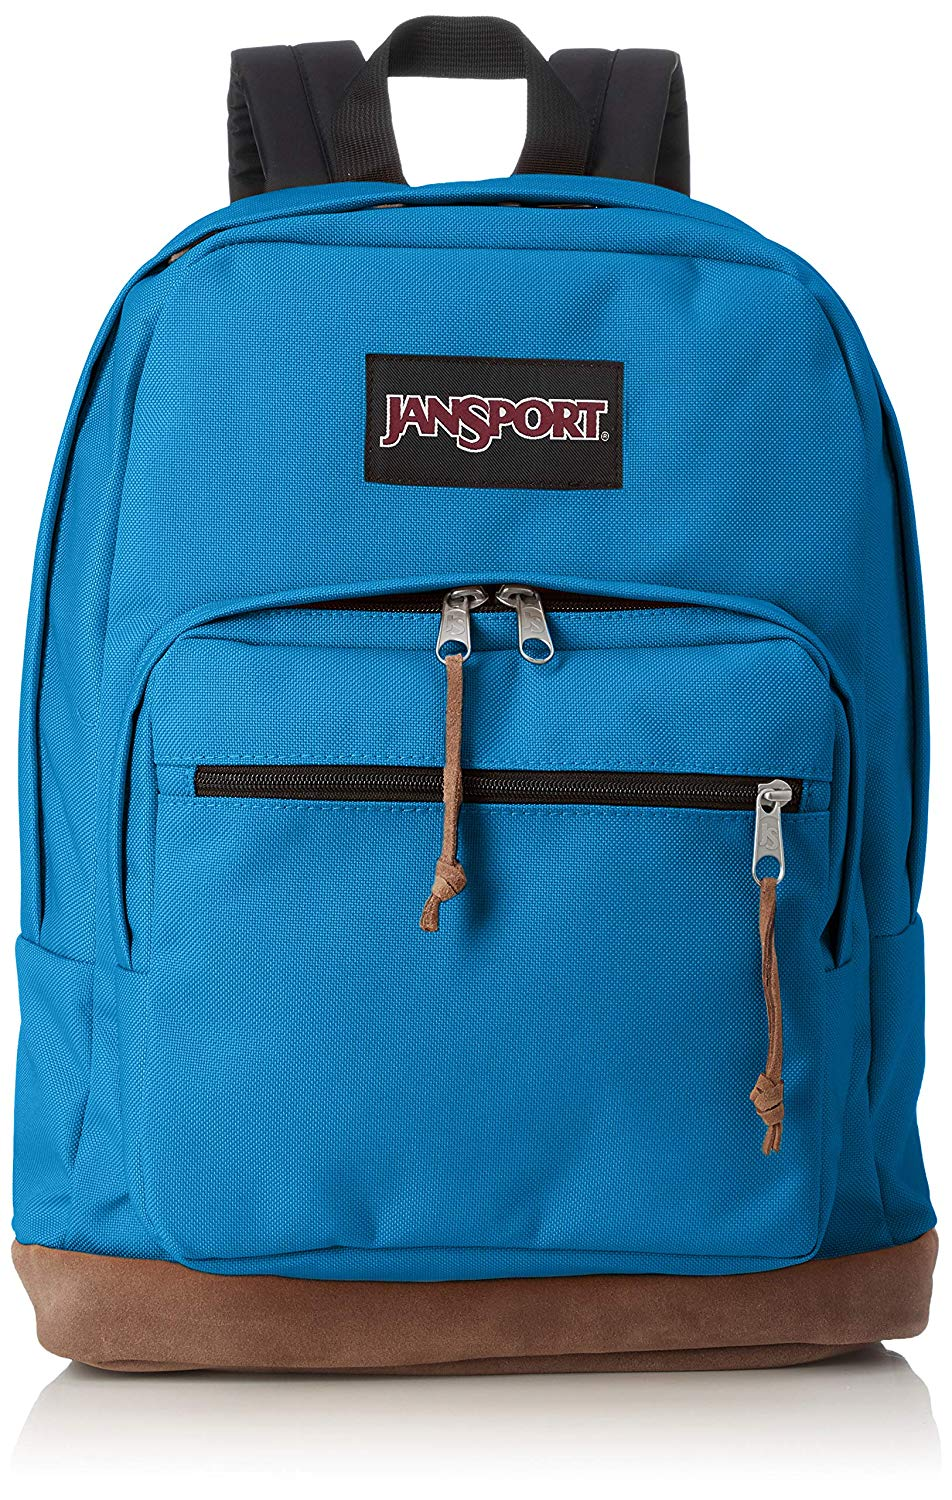 Jansport Cool Student Backpack Blue Heathered Twill- Fenix Toulouse ... ed906162d72f2